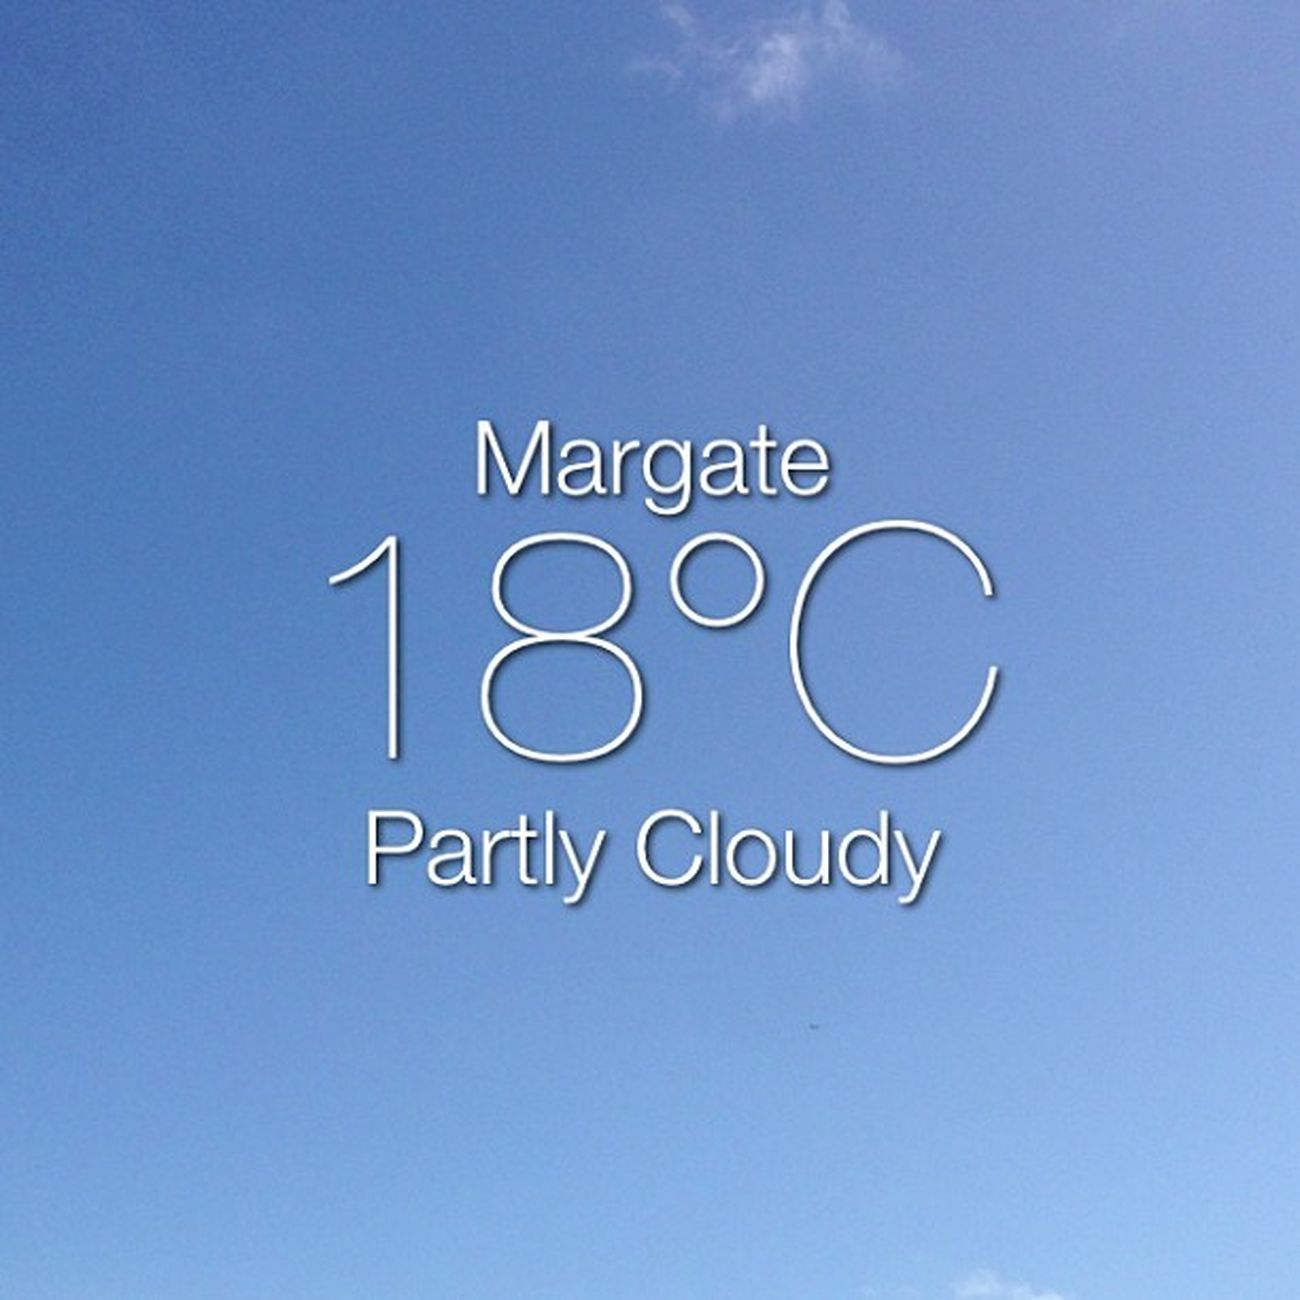 Weather Instaweather Instaweatherpro Sky outdoors nature world margate unitedkingdom day summer gb birchington